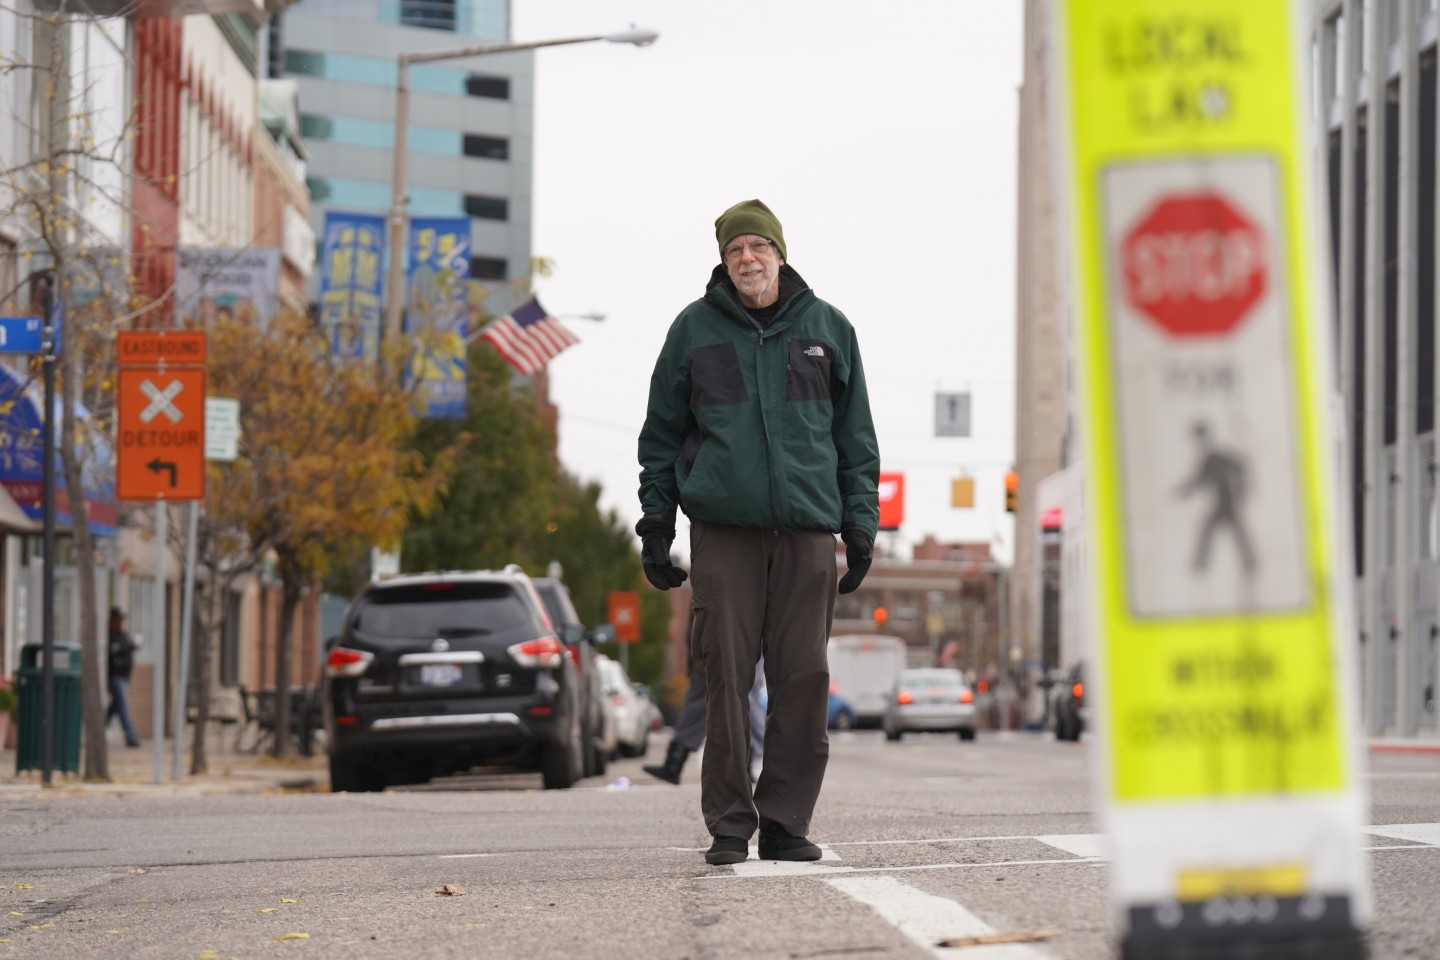 Dr. Ron Van Houten stands in a crosswalk.